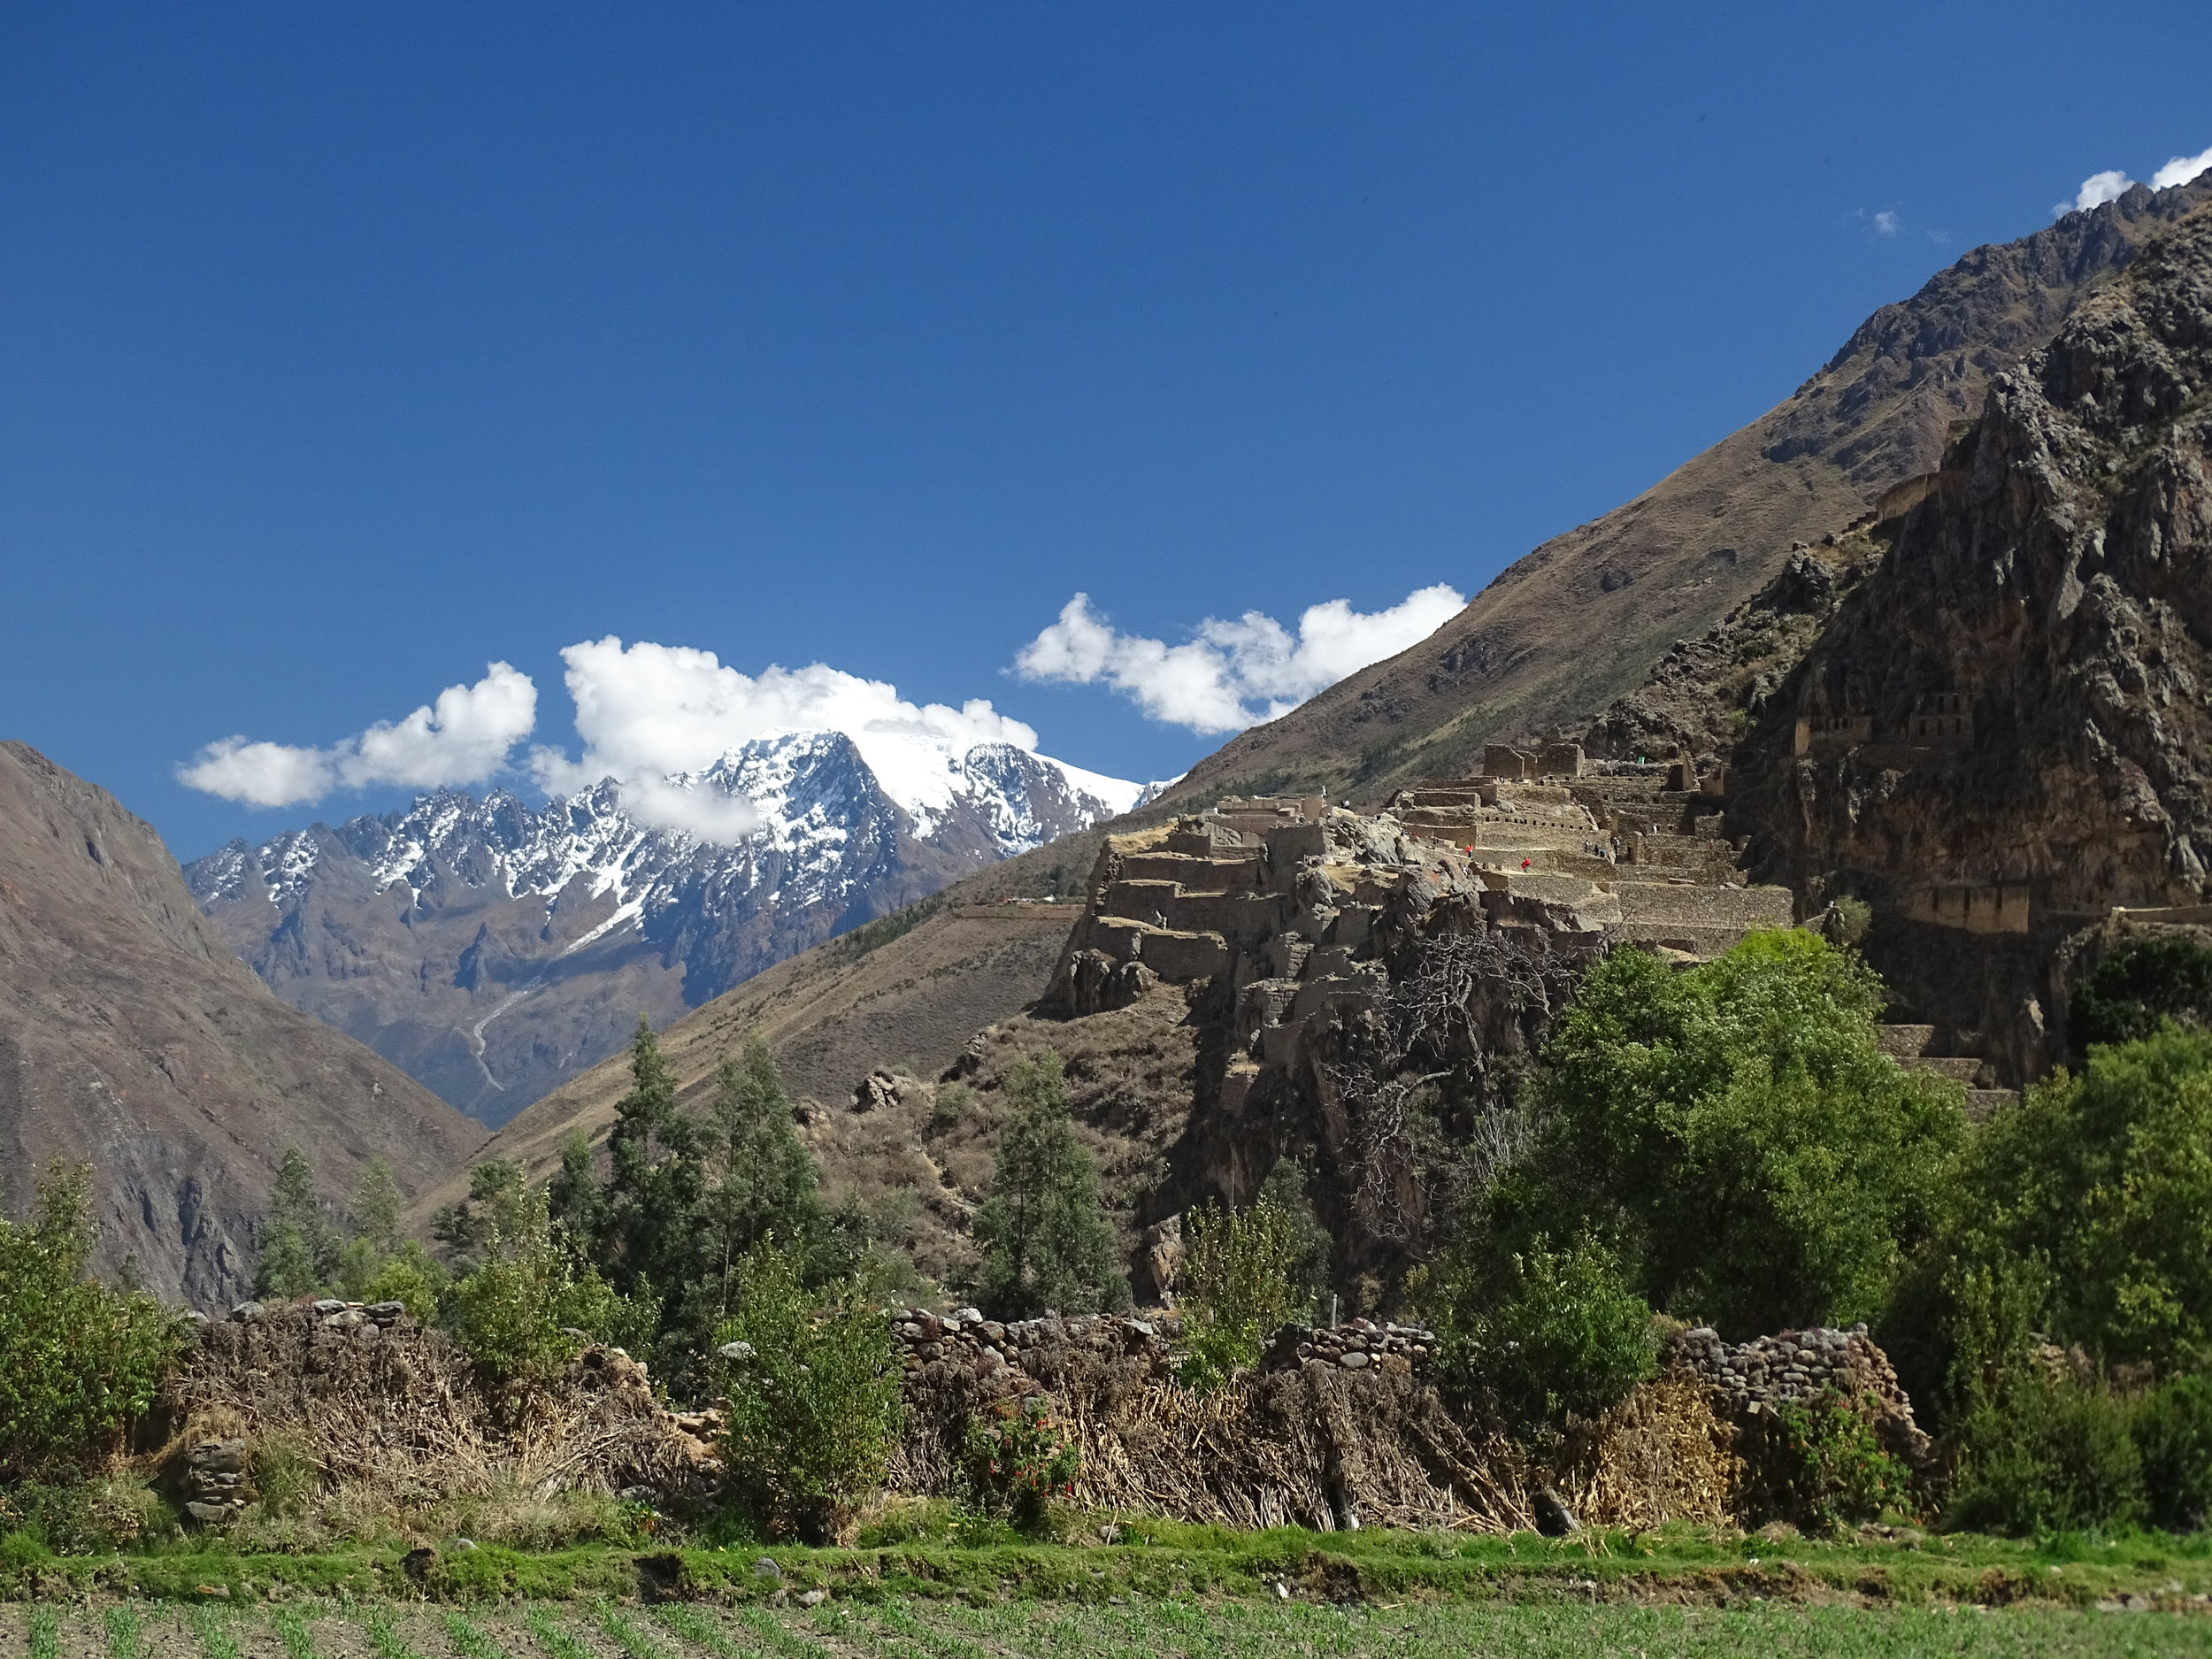 Ollantaytambo has some significant ruins of it's own, with notable examples of the Incan rock-fitting craftmanship.